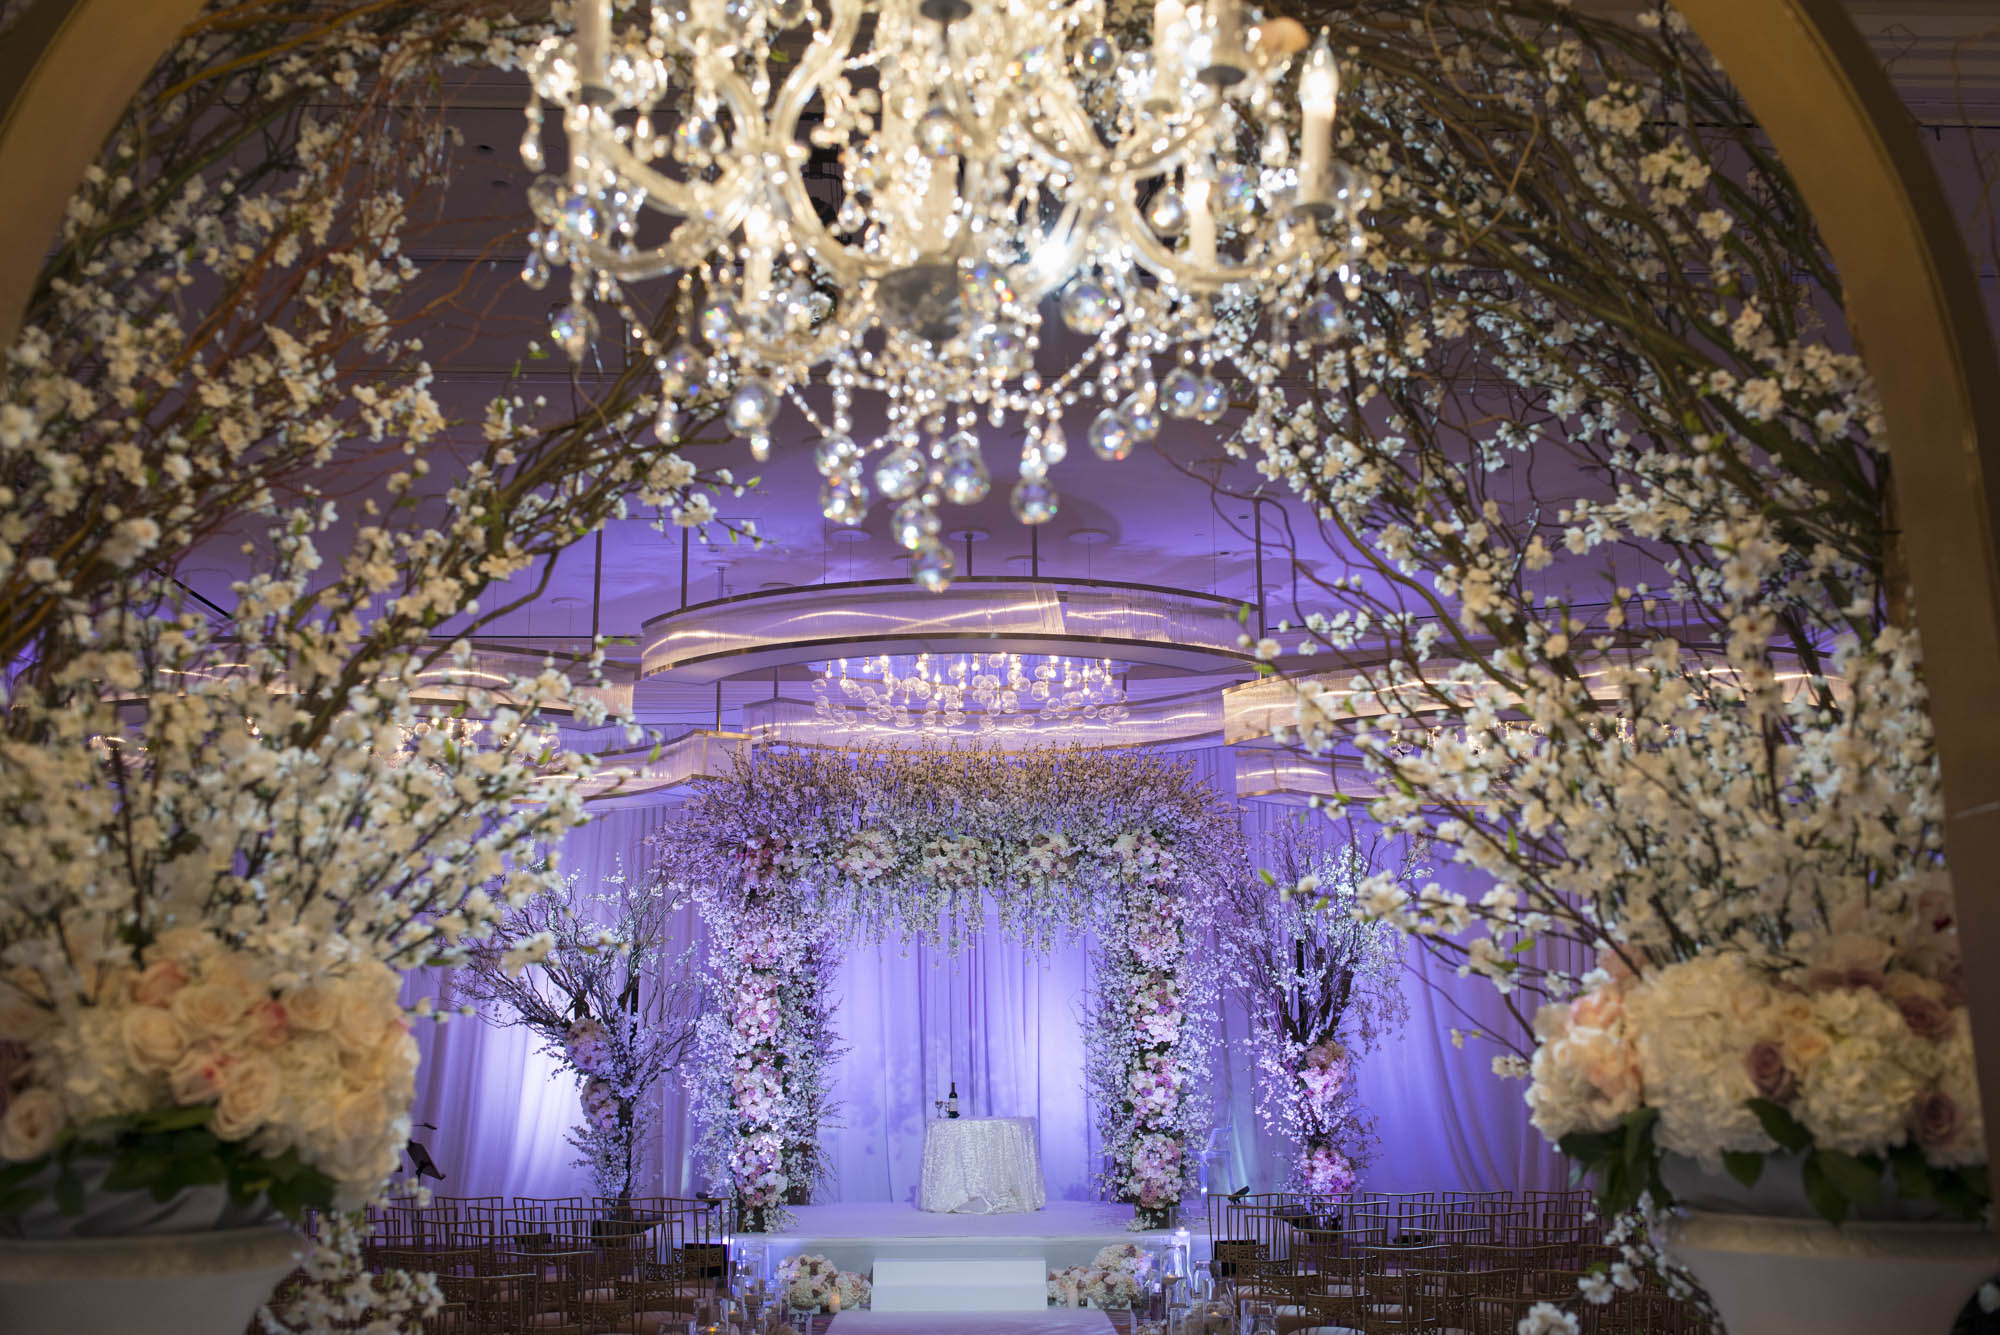 Over the top wedding ceremony featuring a 10X10 ft. chuppah, chandeliers, and cherry blossoms.   CREATIVE PARTNERS:    PHOTOGRAPHY •  AltF Photography  ,PLANNING •  Andrea Eppolito Events  ,FLORAL AND DECOR DESIGN •  Destinations by Design  ,VENUE AND CATERING •  Mandarin Oriental, Las Vegas  ,STATIONERY DESIGN •  Paper and Home  ,  BRIDE'S GOWN • Vera Wang ,SHOES • Jimmy Choo ,  GROOM'S FORMAL WEAR •  Vera Wang  ,  ENGAGEMENT RING • Delage Jewelers ,  WEDDING BANDS • T-Birds Jewels   ,  CAKE DESIGN • Mandarin Oriental Las Vegas , DRAPING;  DANCE FLOOR DESIGN AND PRODUCTION • Destination by Design ,  LIVE EVENT ARTIST • Sam Day ,ENTERTAINMENT  • Lucky Devils Band ,CINEMATOGRAPHY • Something New